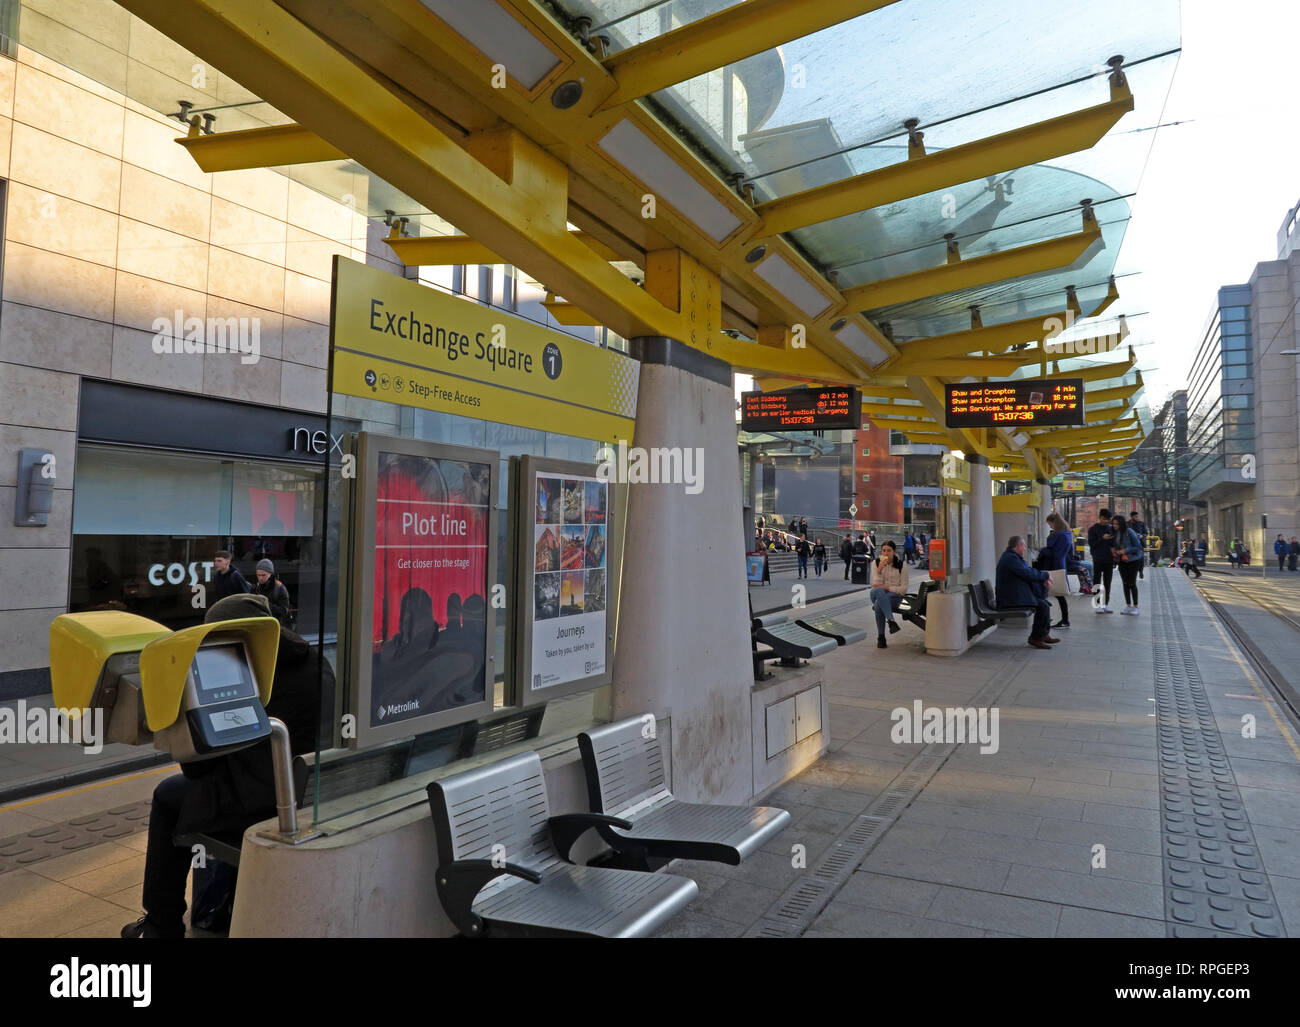 Exchange Square Manchester Metrolink tram stop, with passengers, central Manchester, North West England, UK - Stock Image